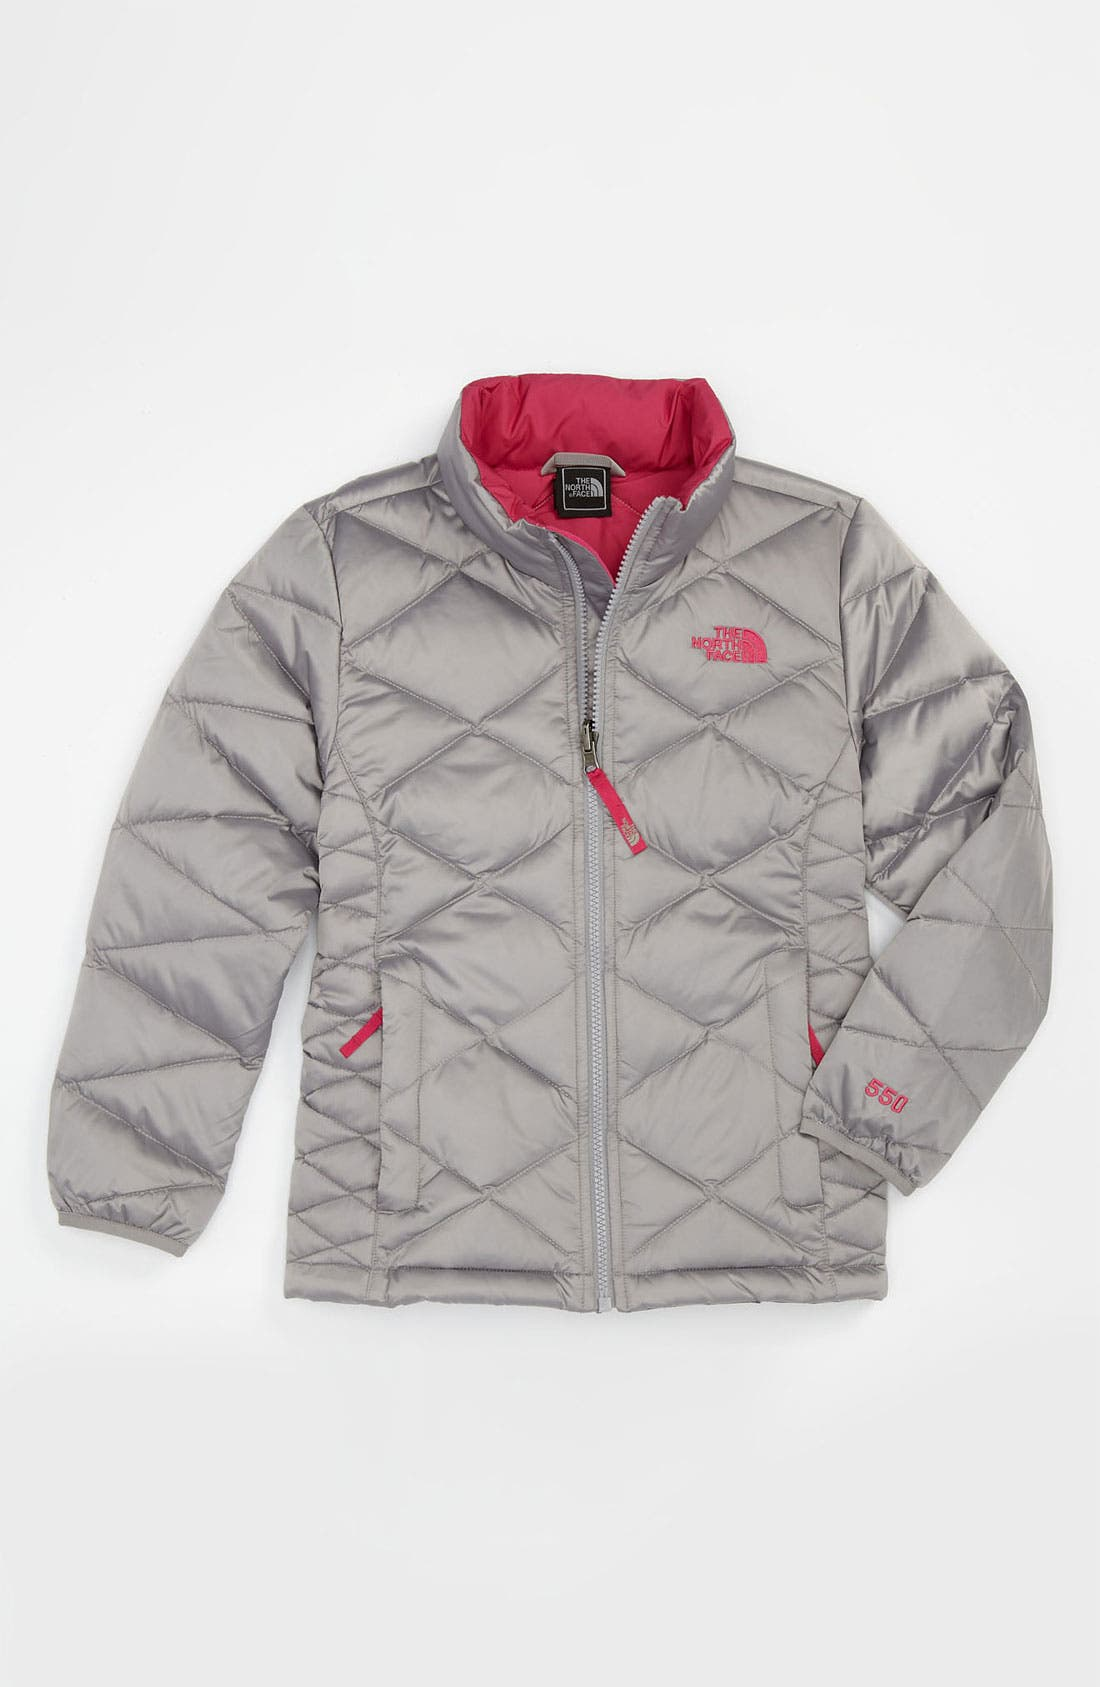 Main Image - The North Face 'Aconcagua' Jacket (Big Girls)